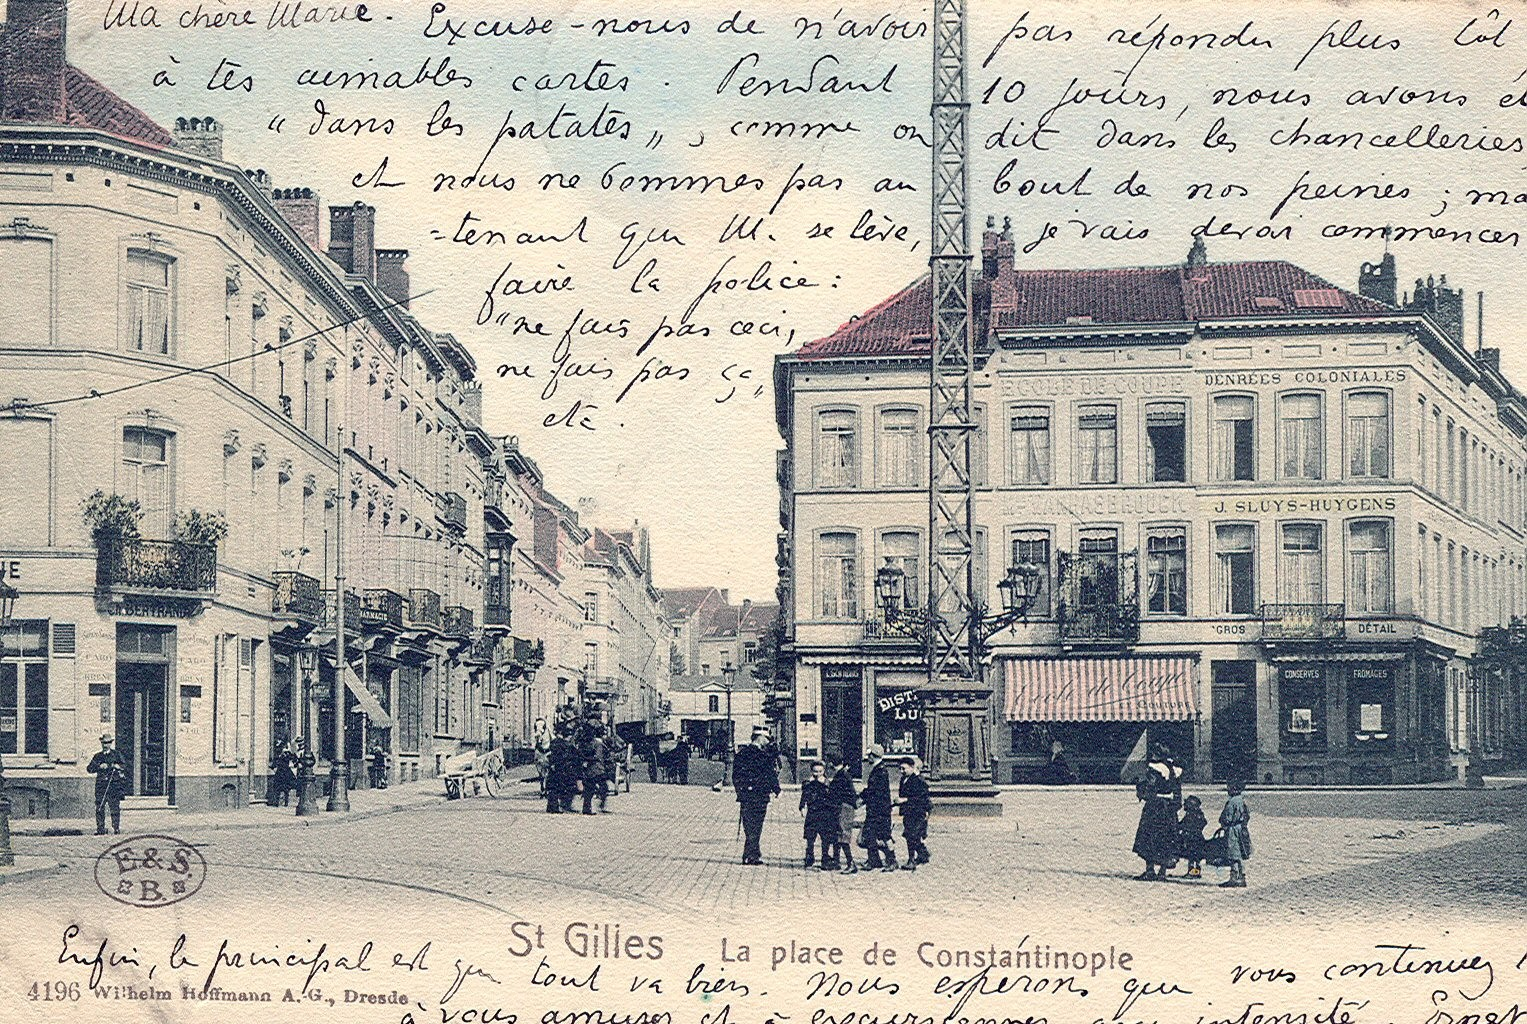 Anc. place de Constantinople, act. place des Héros (Collection de Dexia Banque, 1904).